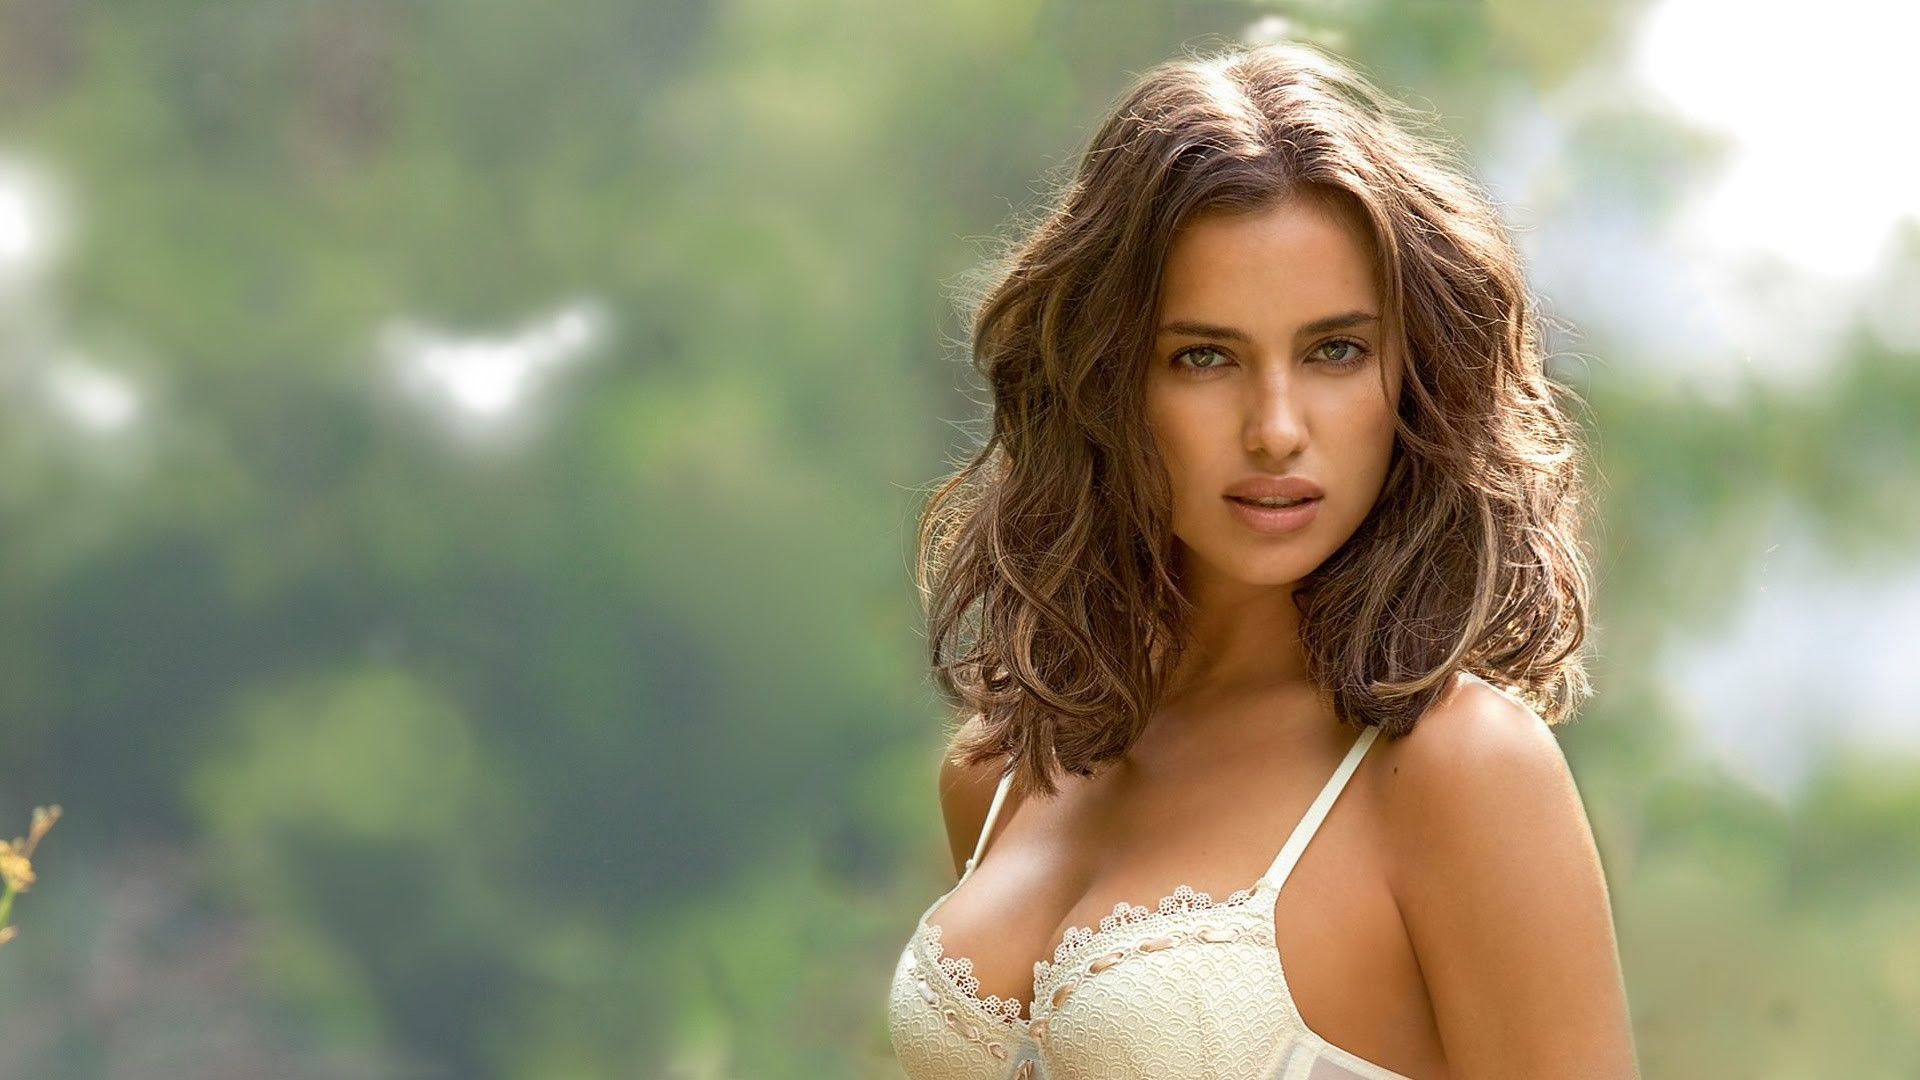 Beautiful Women Pictures-8